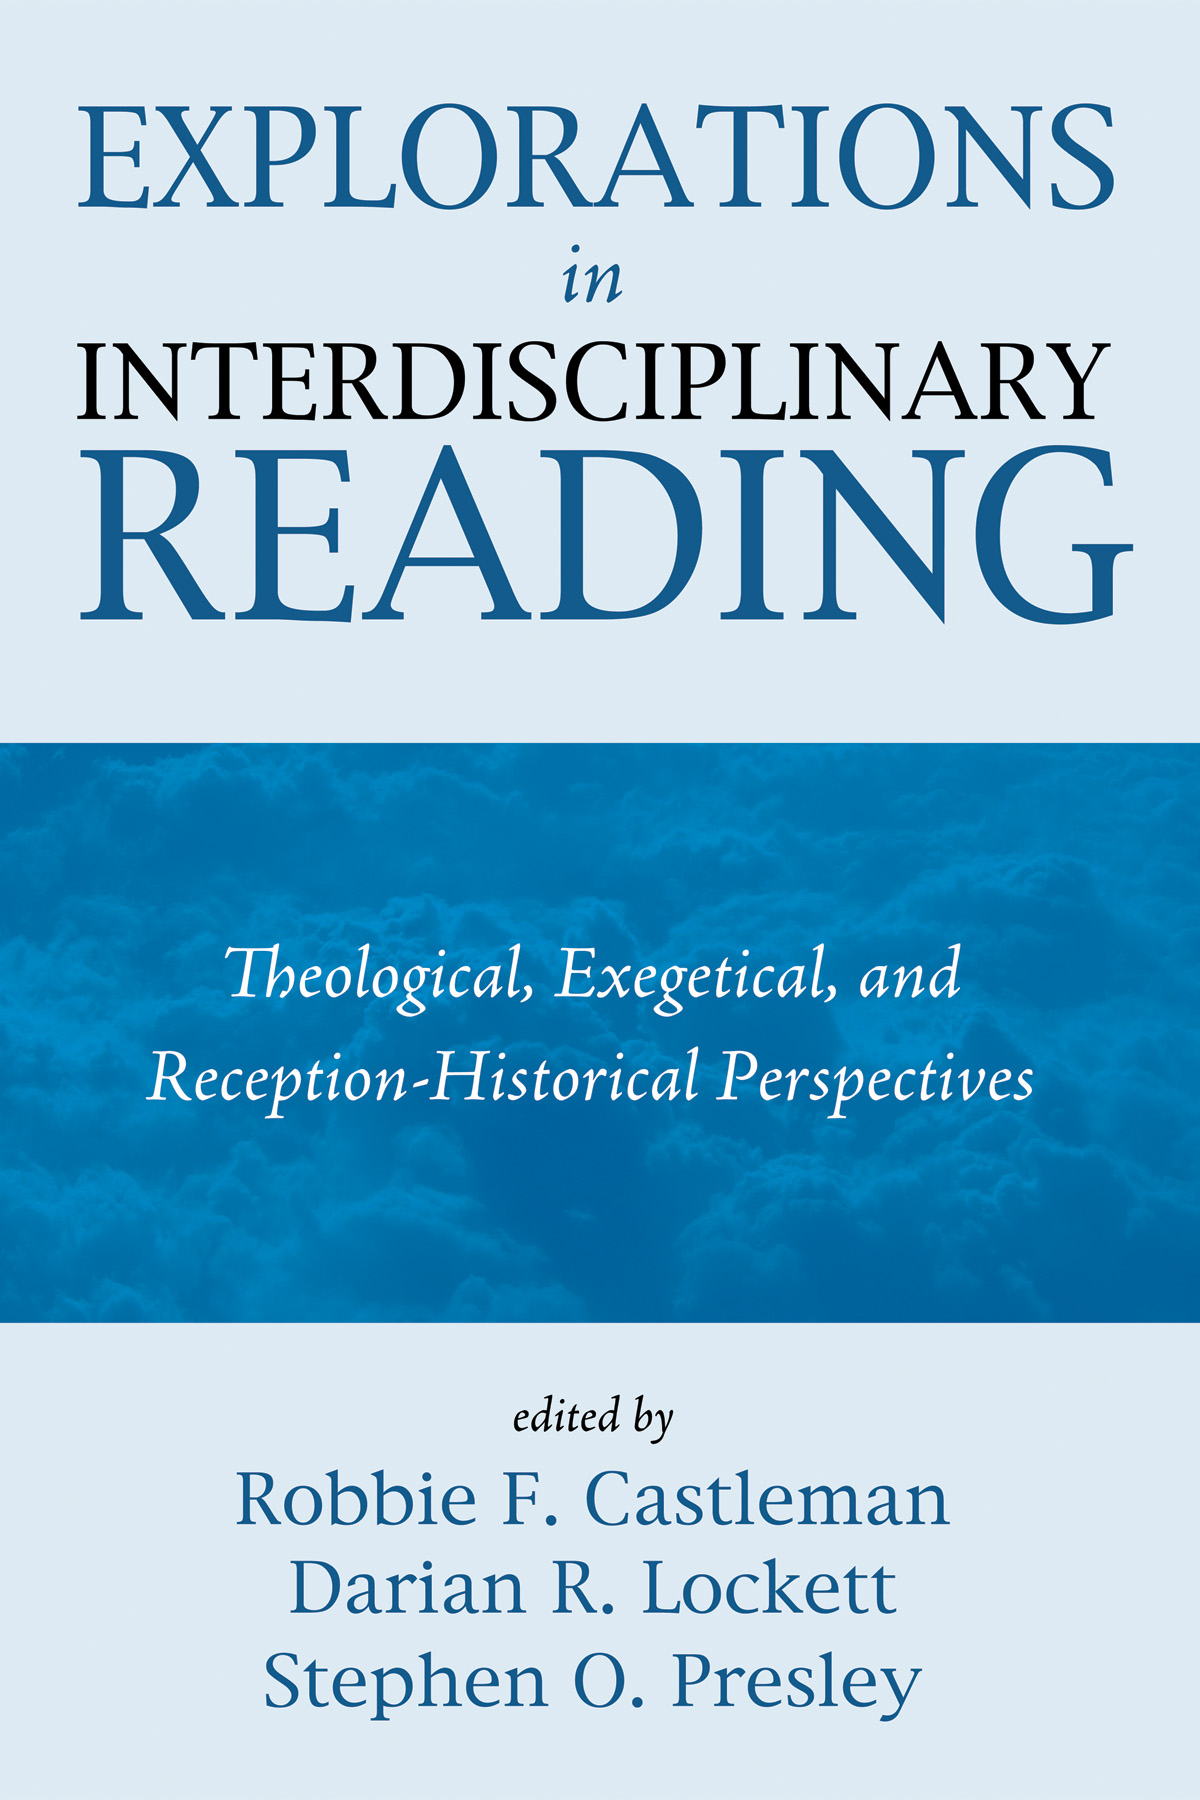 Explorations in Interdisciplinary Reading Cover